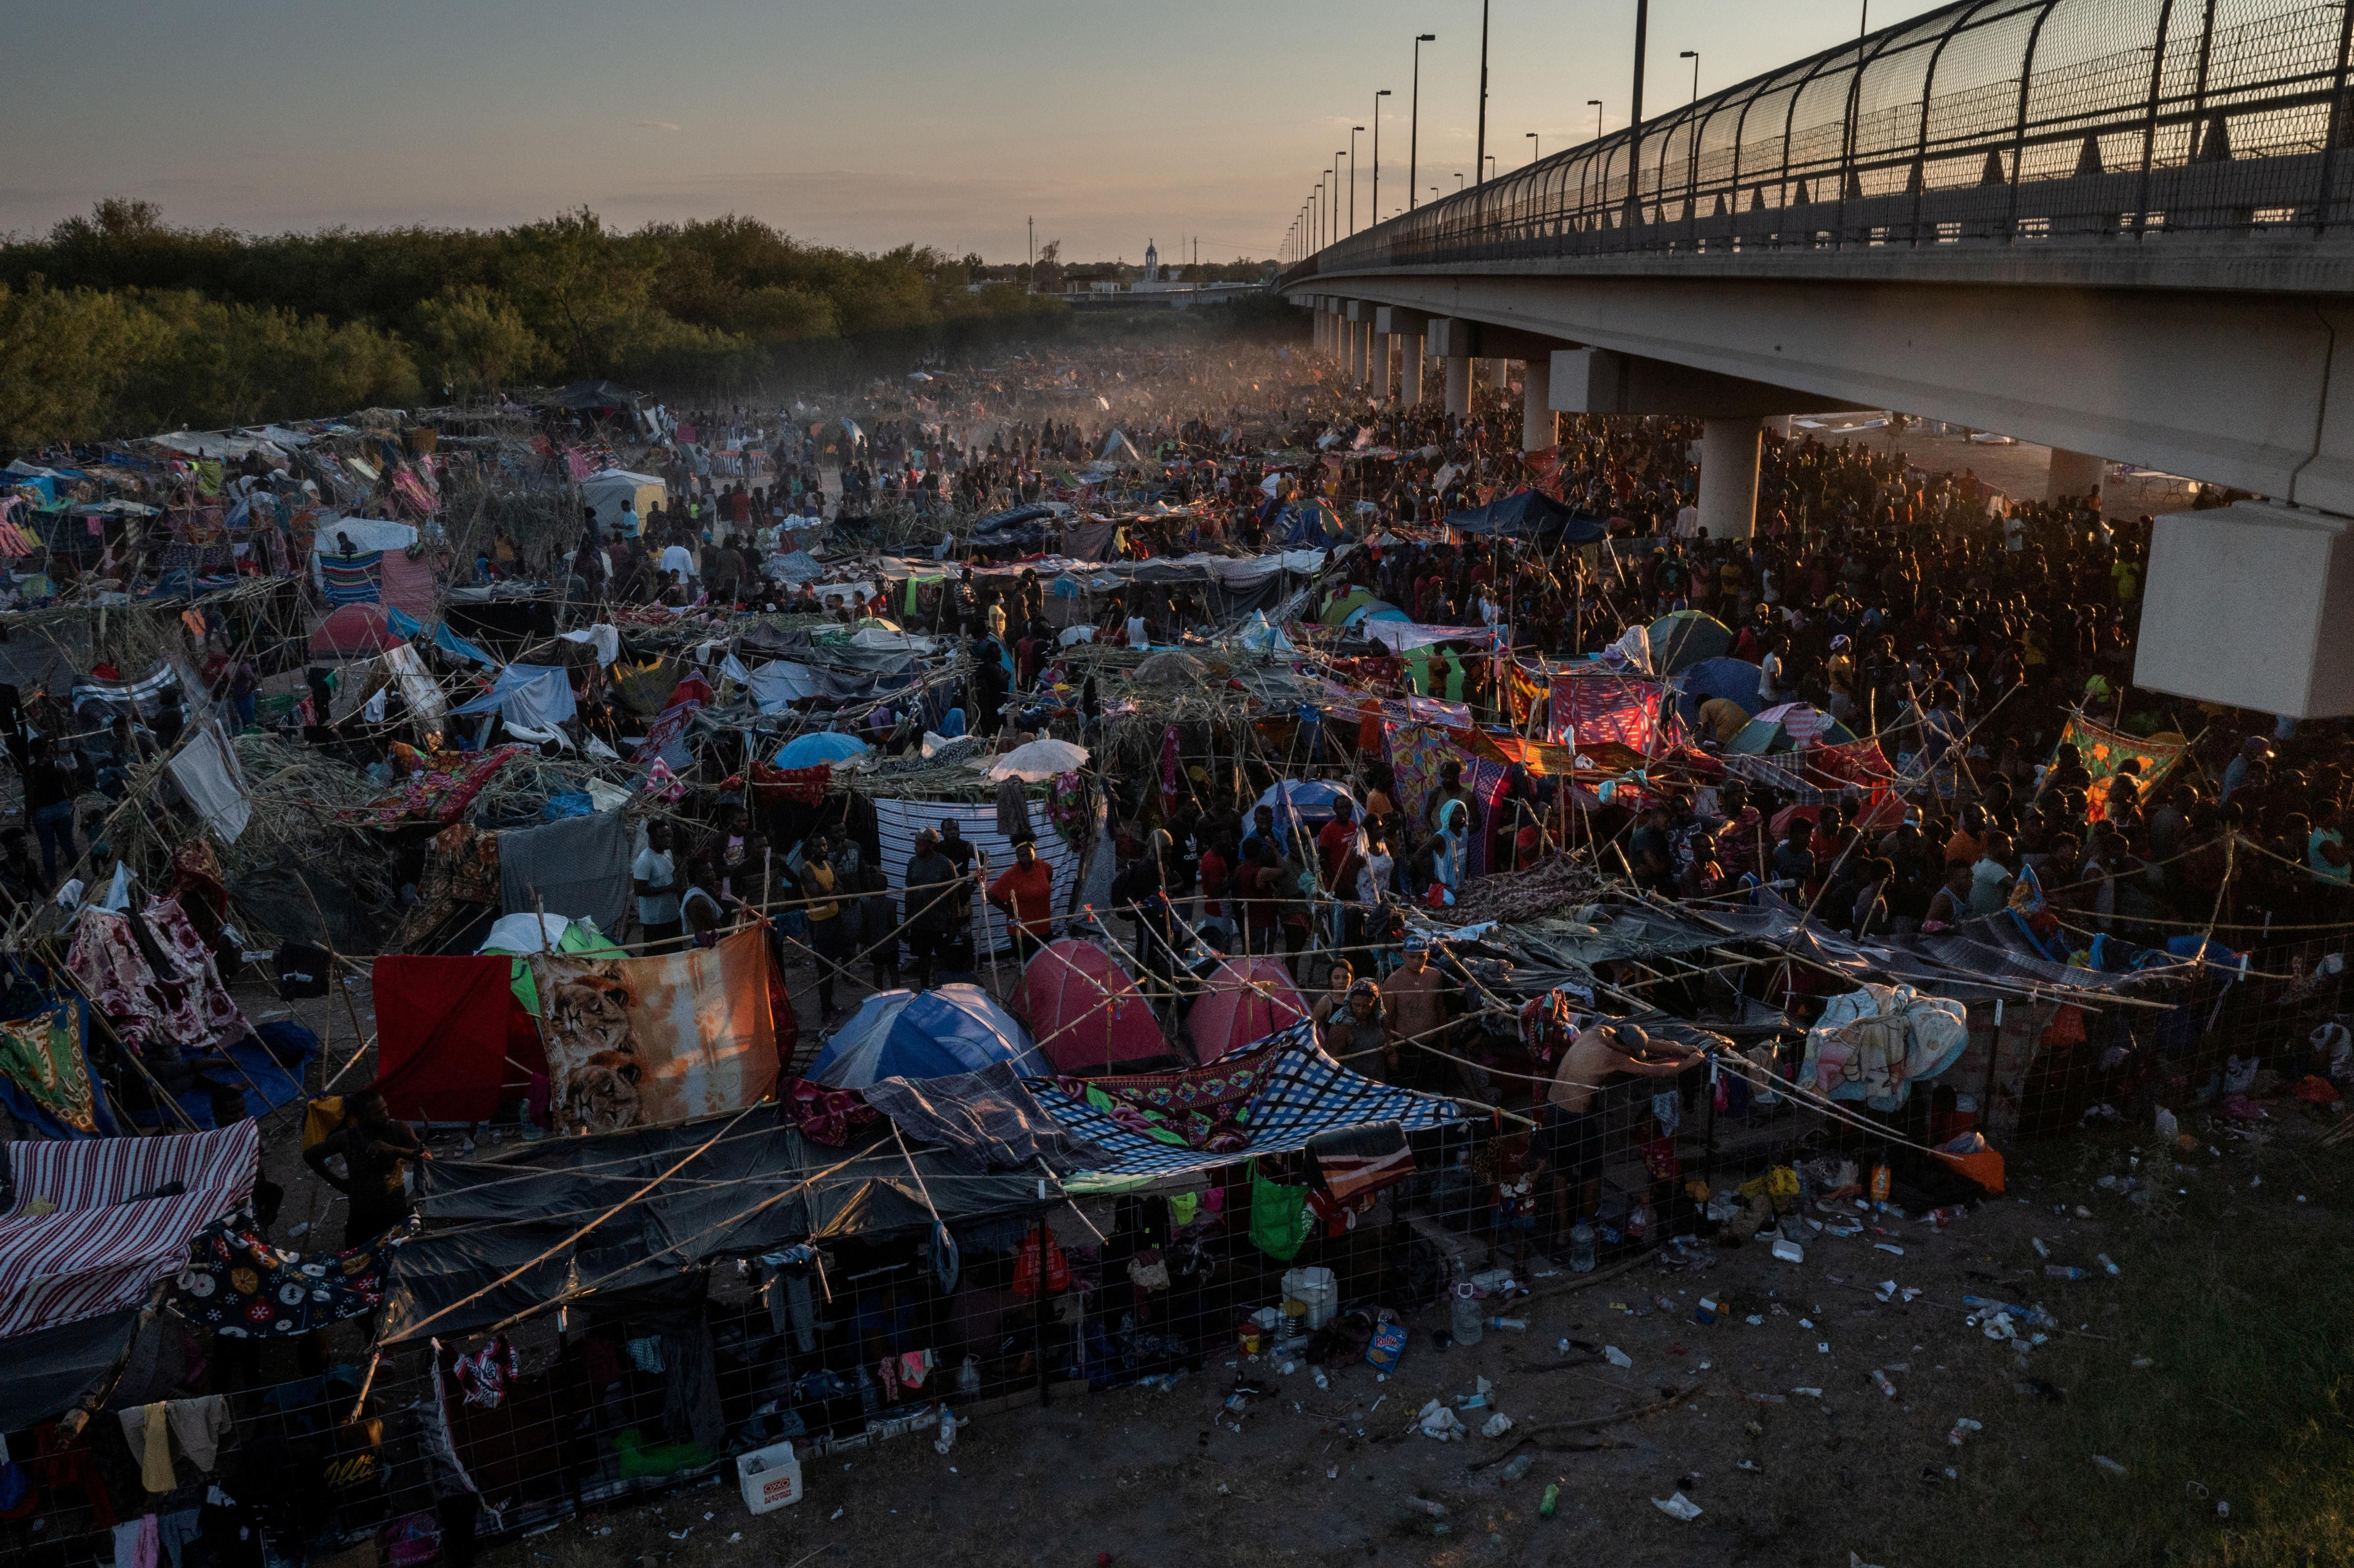 Migrants take shelter along the Del Rio International Bridge at sunset as they await to be processed after crossing the Rio Grande river into the U.S. from Ciudad Acuna in Del Rio, Texas, U.S. September 19, 2021.